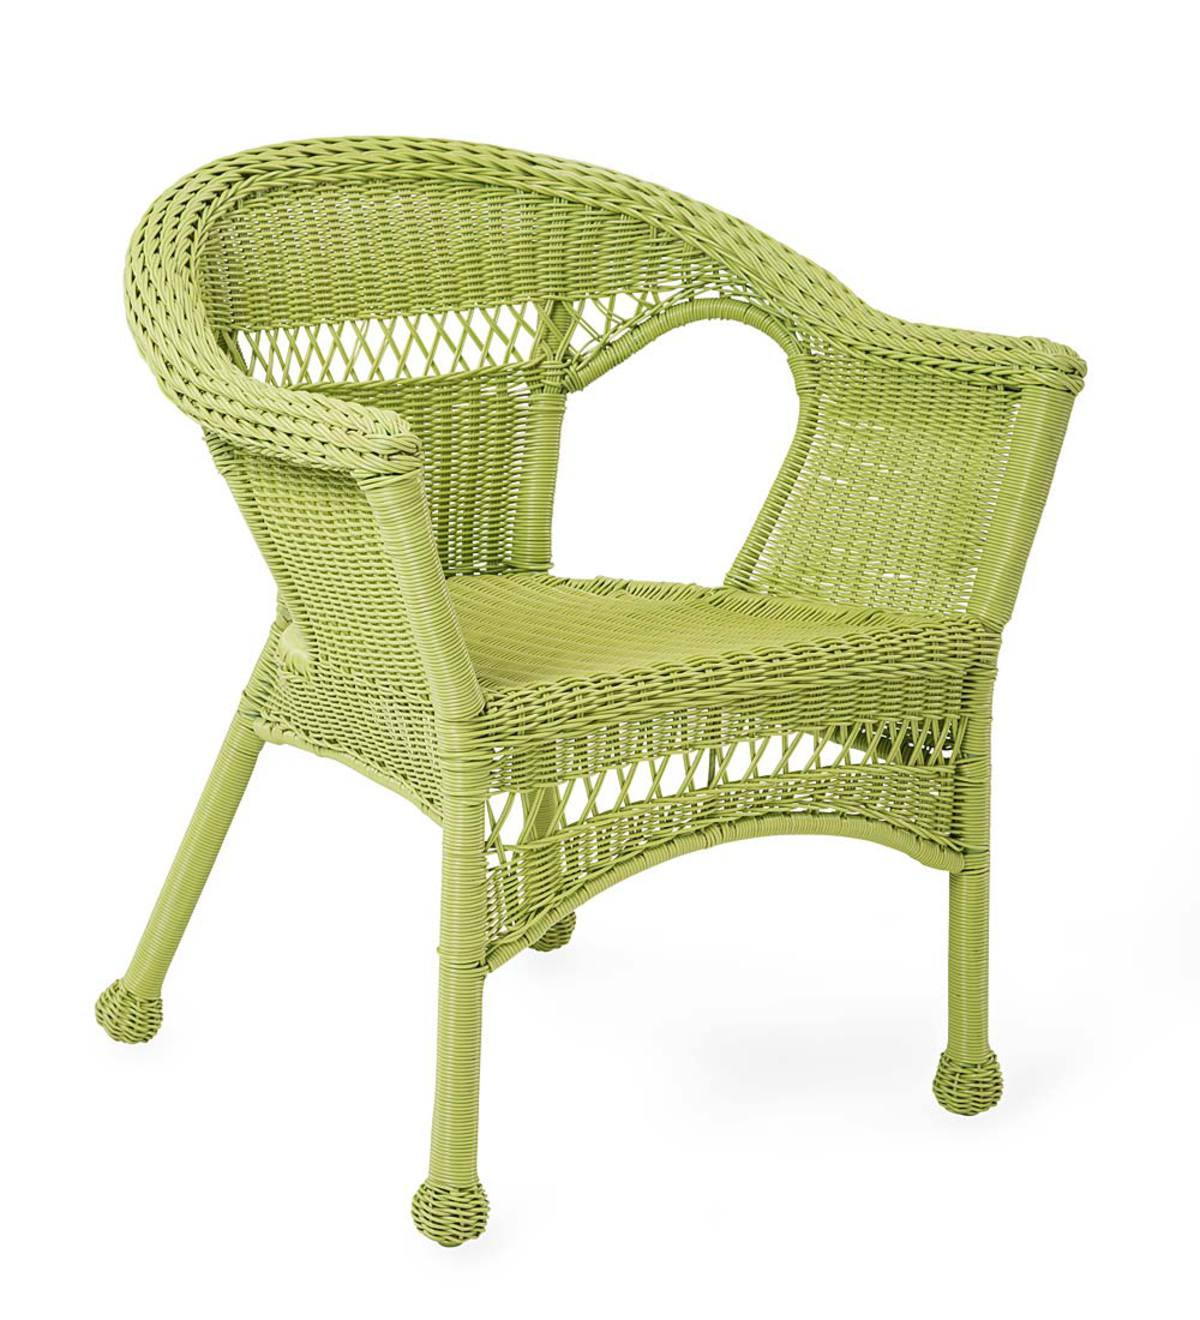 Sale! Easy Care Resin Wicker Chair